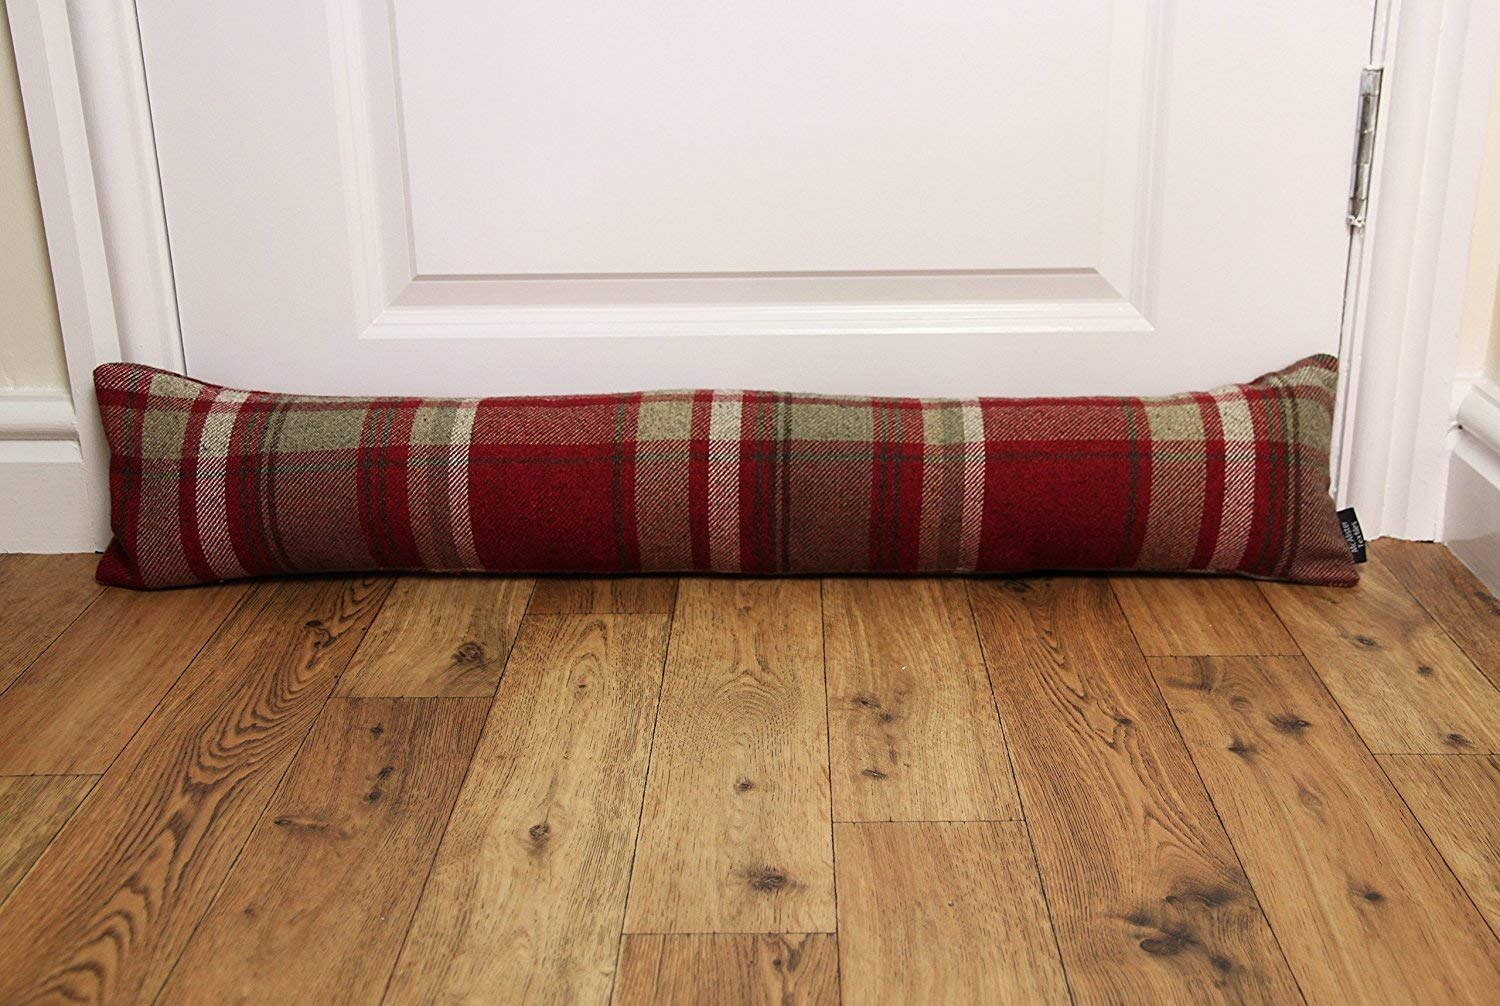 McAlister Heritage Plush Plaid Unfilled Decorative Door Stopper Wedge | 8x6 Gray Black White | Rustic Farmhouse Decor Cabin Accent McAlister Textiles